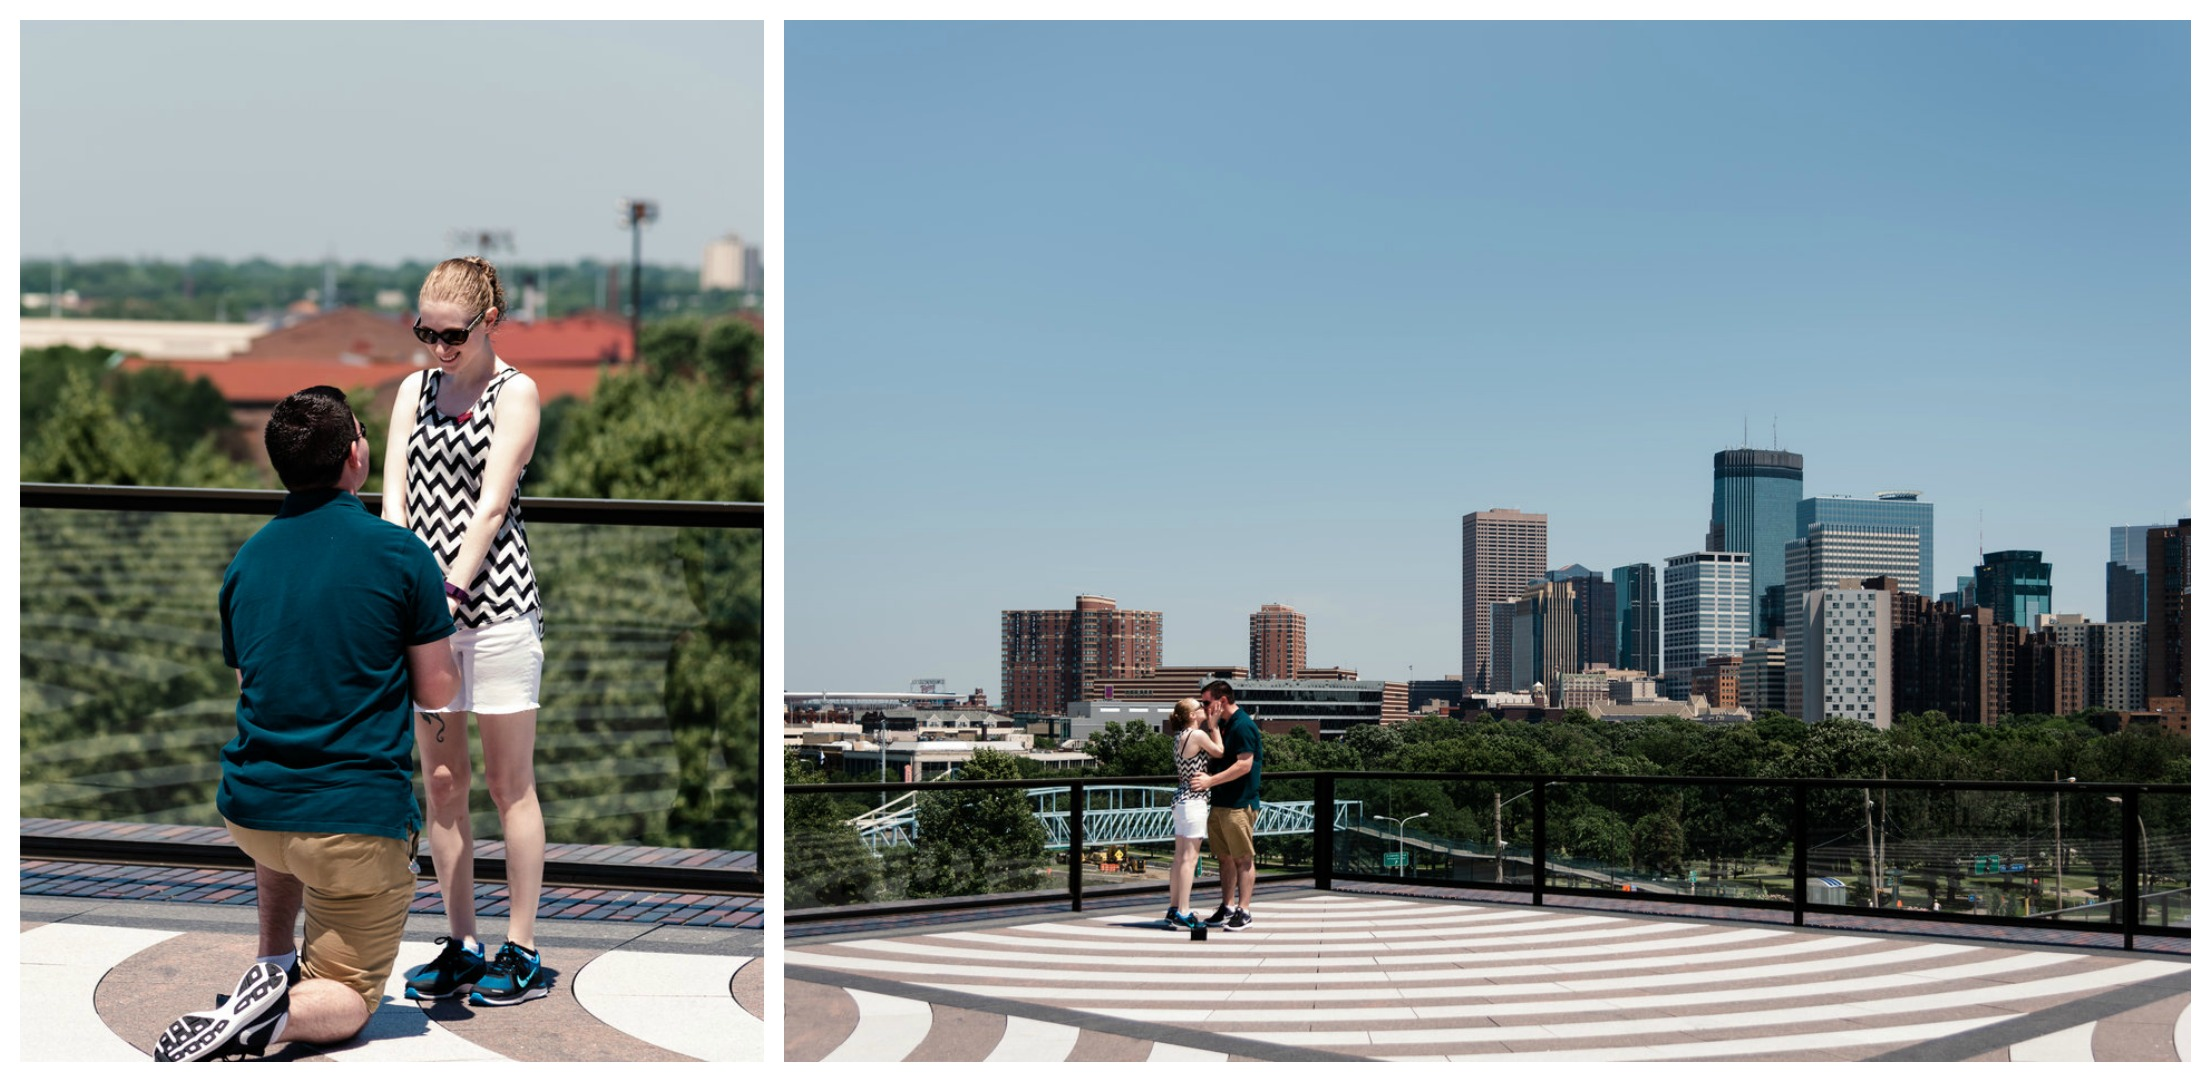 Walker Art Center Surprise Proposal - Skyline Mini Golf Proposal - Minneapolis Proposal Photographer.jpg